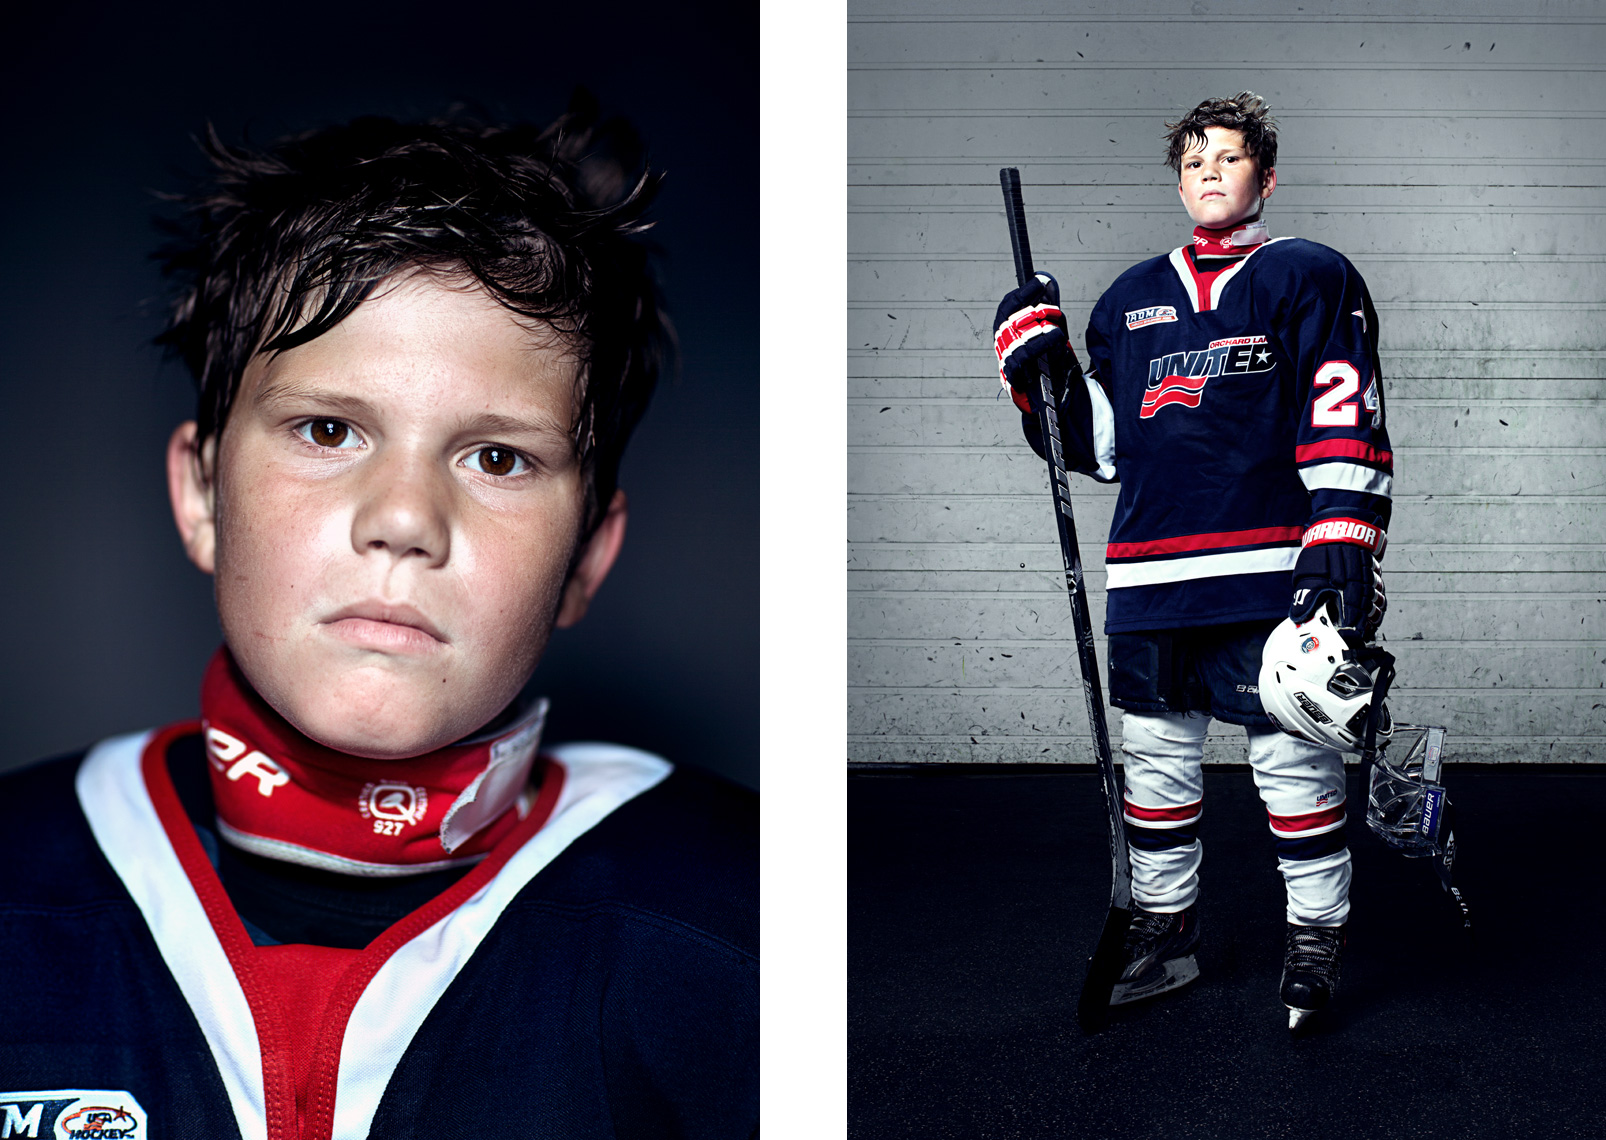 Philadelphia Photographer STEVE BOYLE - ESPN Youth Hockey